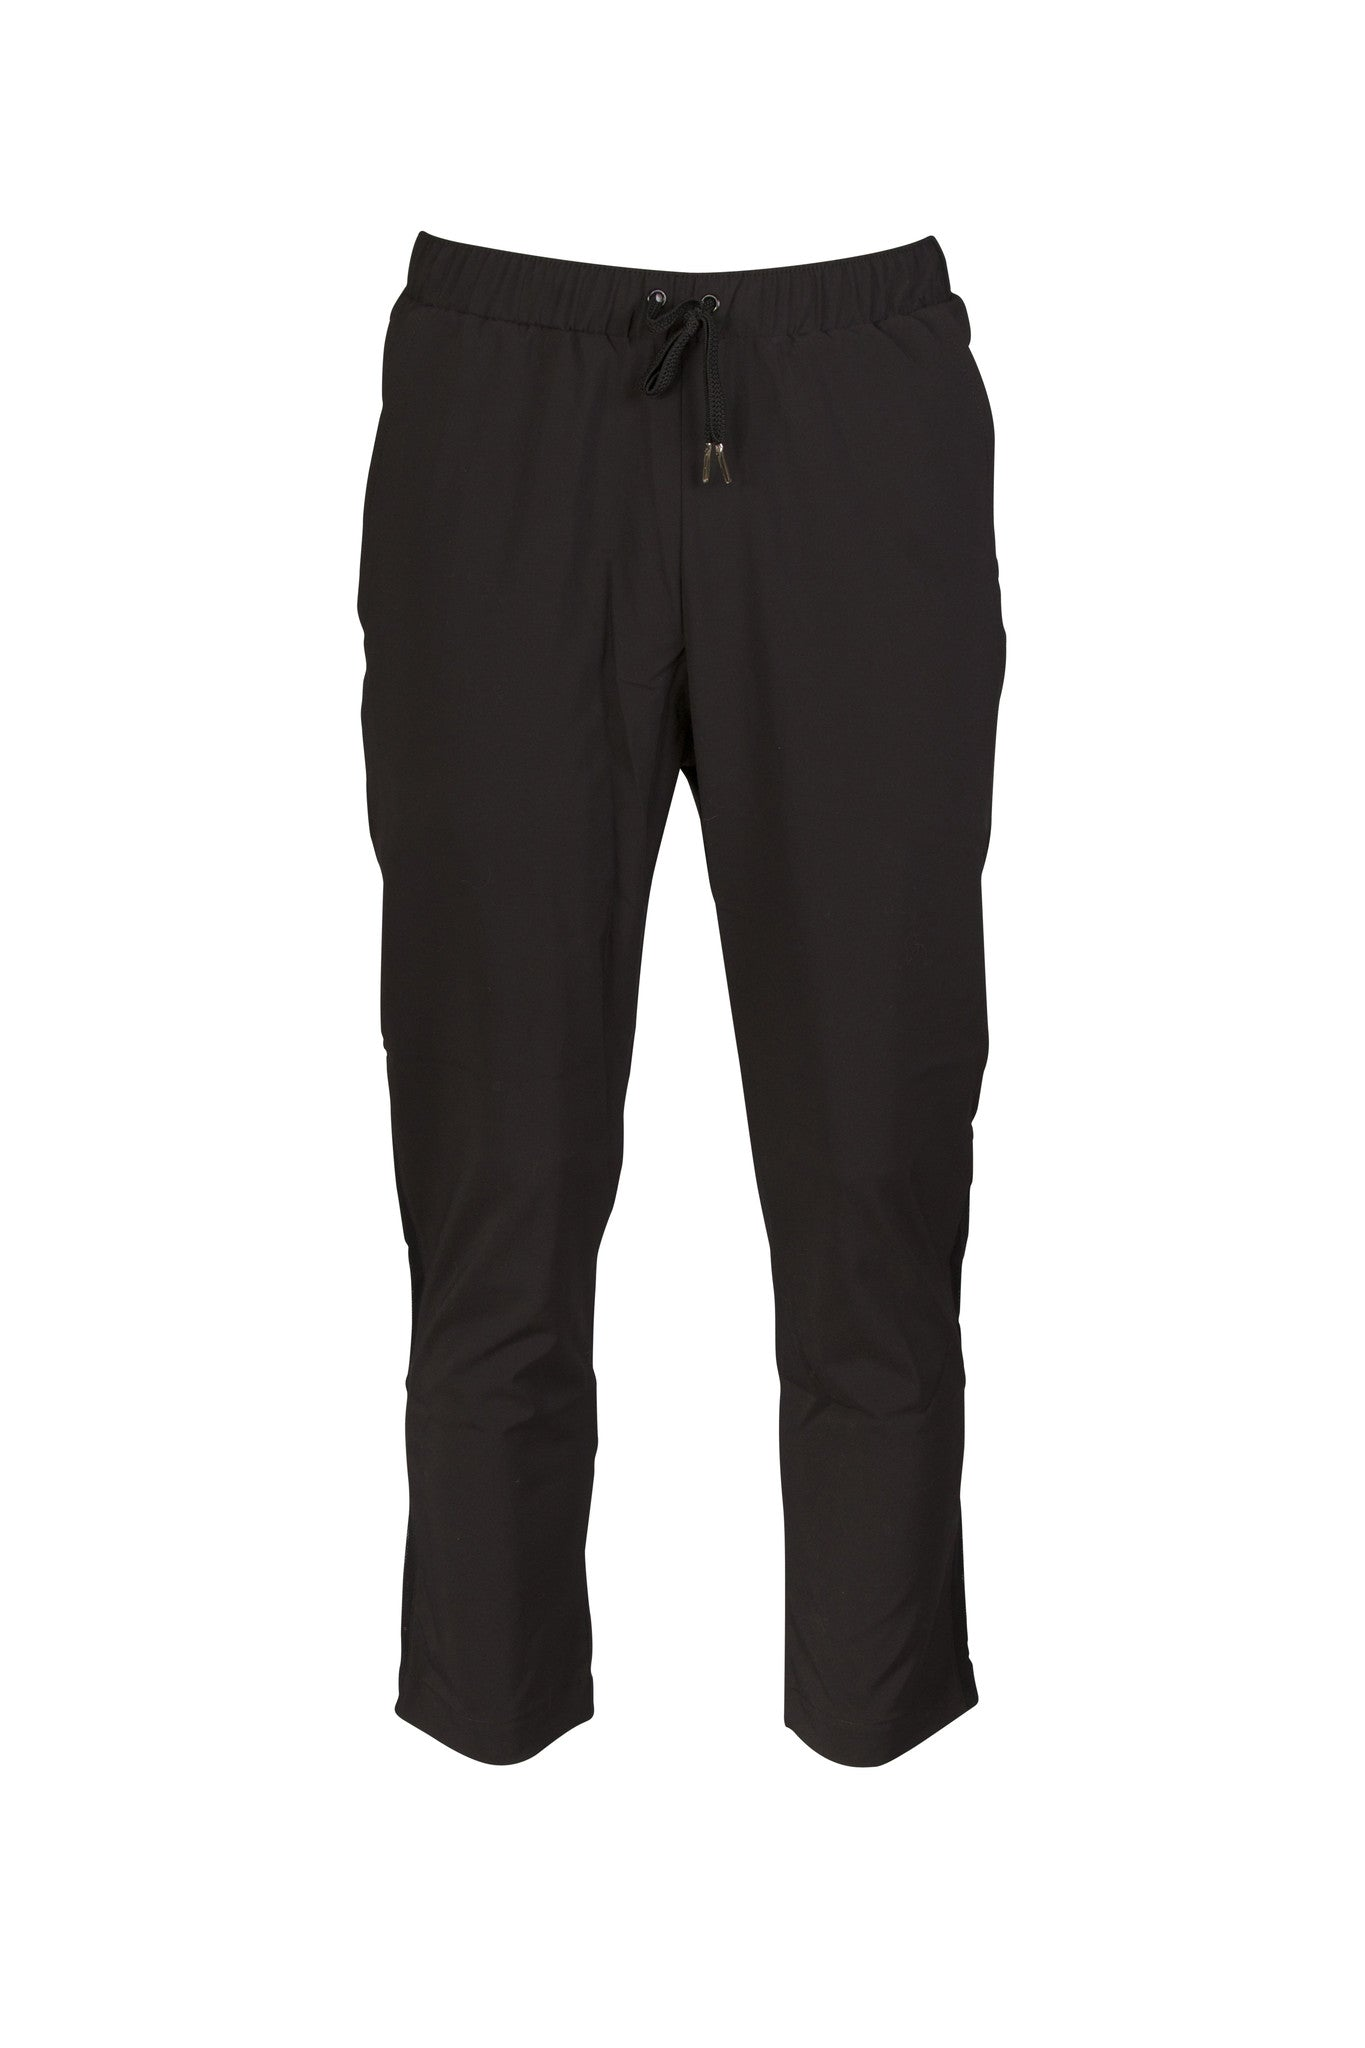 Micro-Fiber Leightweight Track Pant